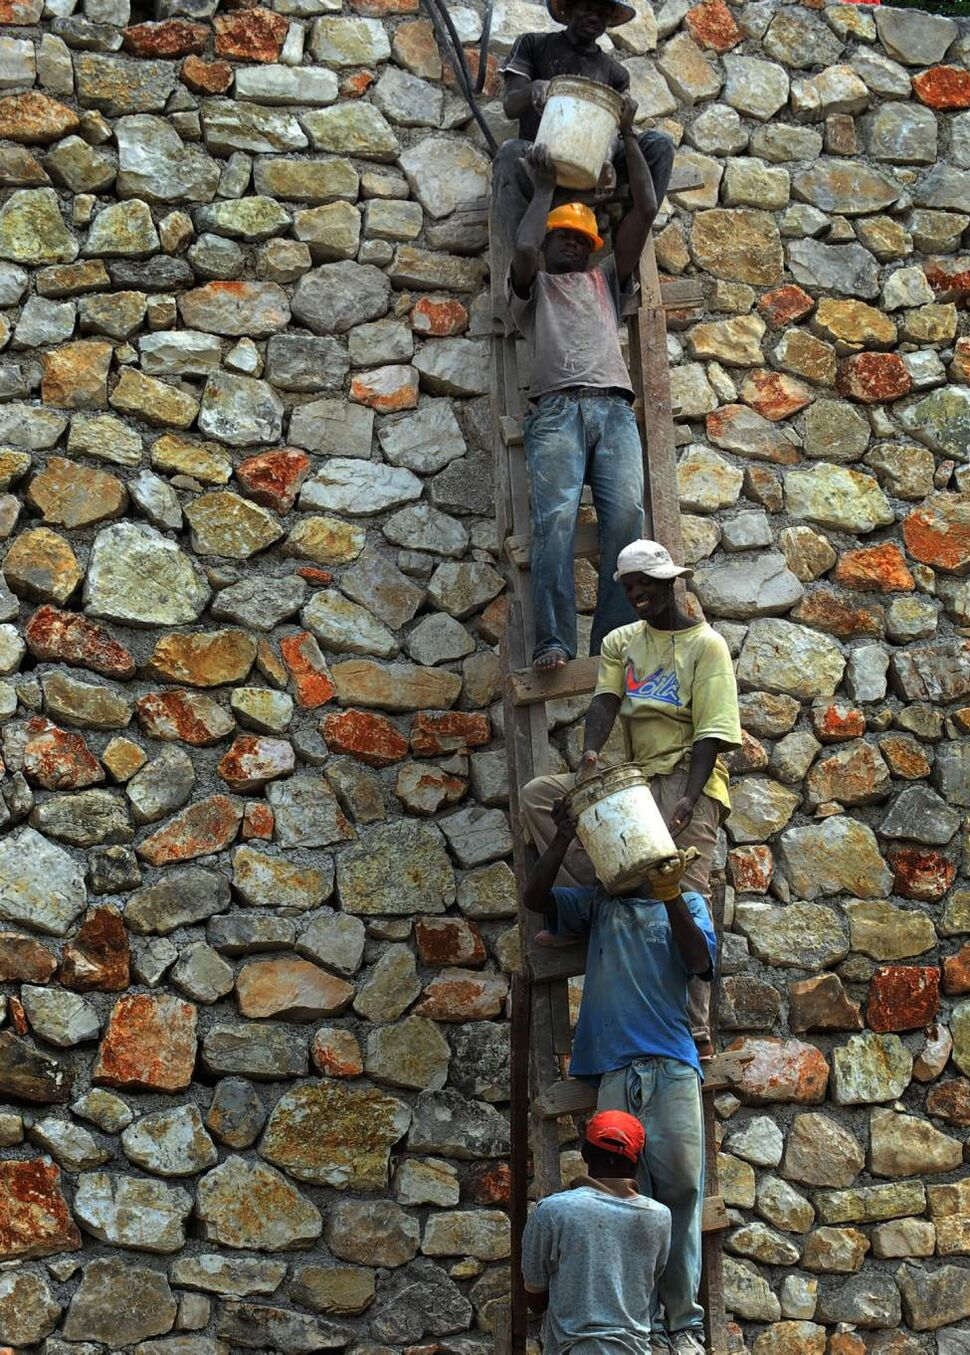 A group of Haitian workers share a ladder as they hoist sand buckets while constructing a retaining wall in Port-au-Prince, Haiti. (Ricky Carioti / Washington Post)